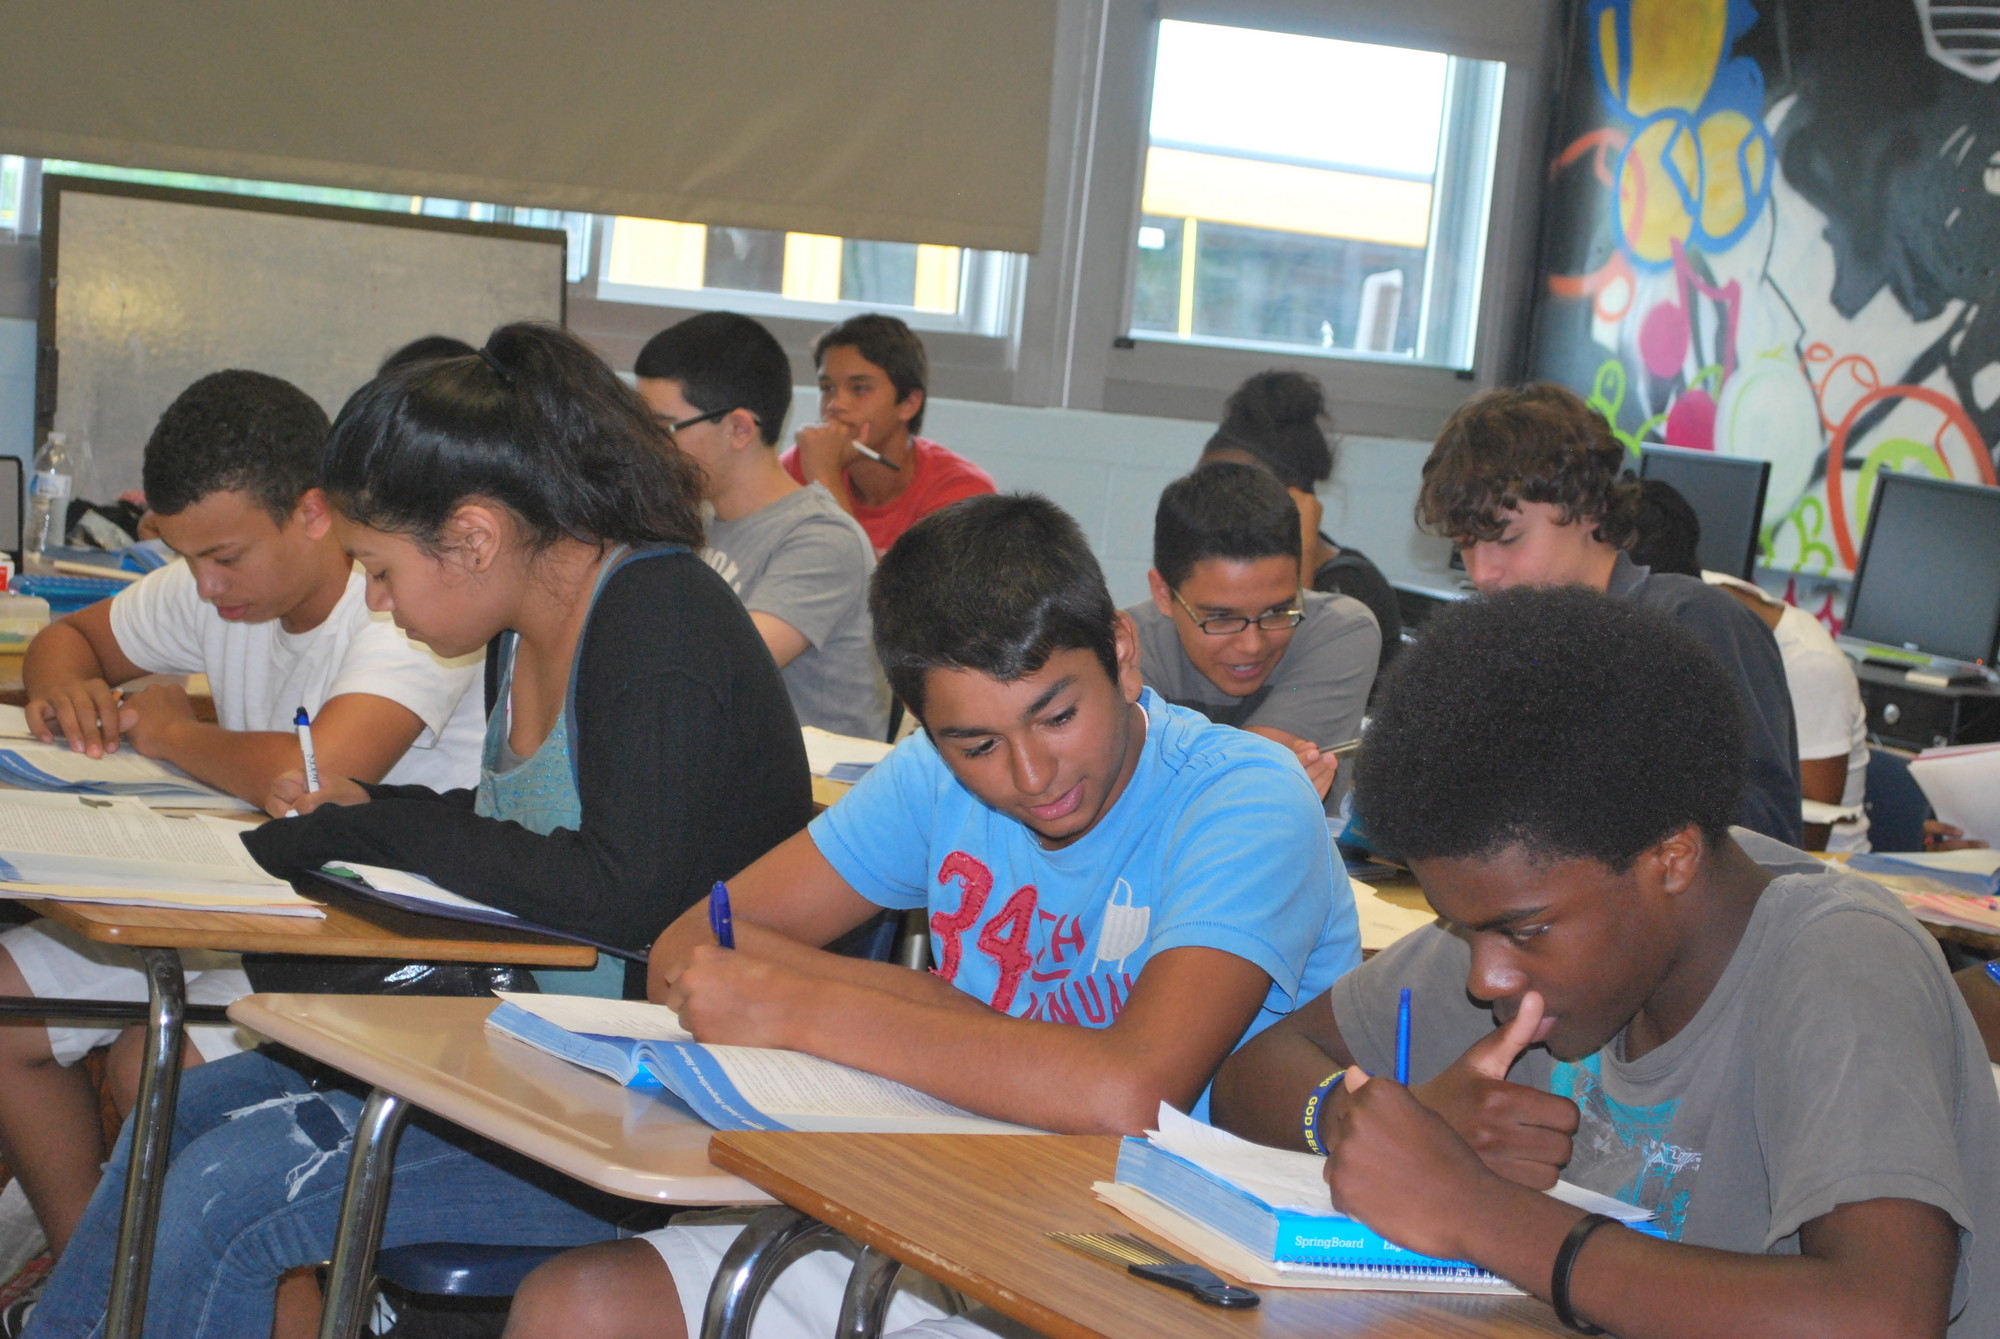 Freshman and sophomores in an Advanced Placement English prep class collaborated on a reading assignment.